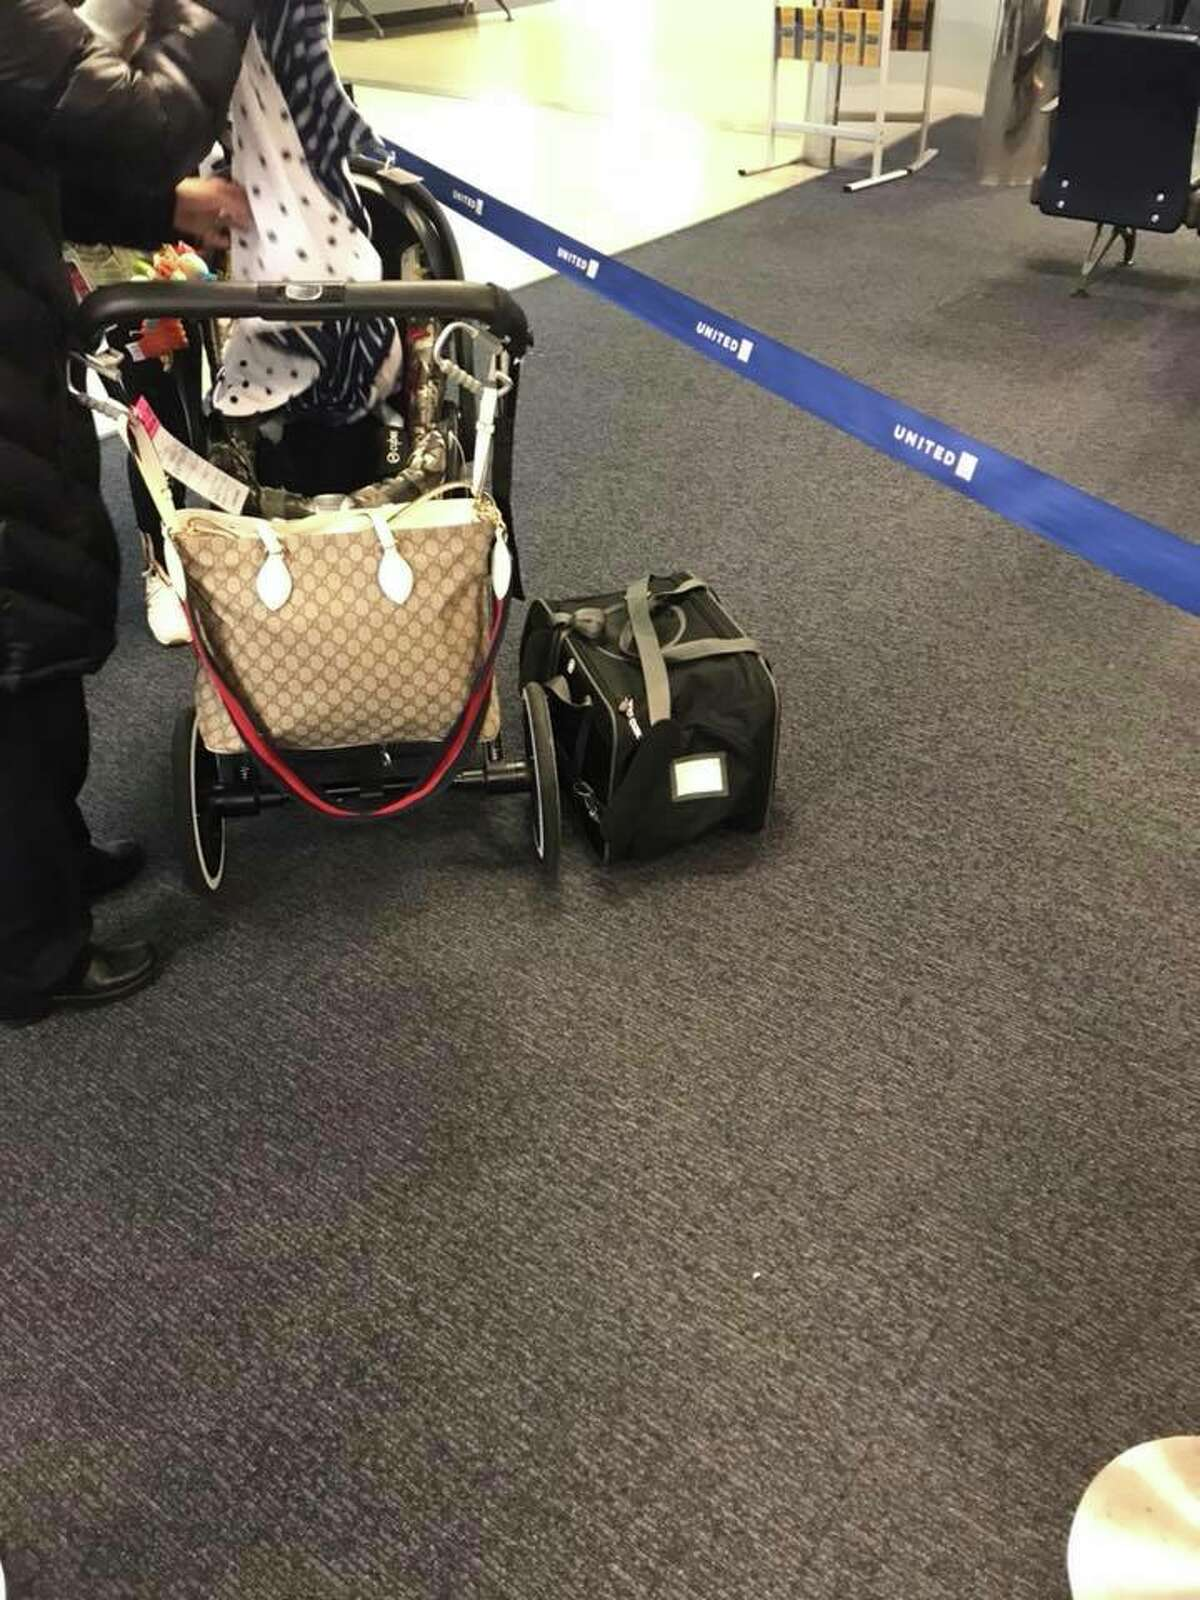 United Airlines is investigating a 10-month-old puppy that died Monday evening after a flight attendant told its owner to place it and its carrier in the overhead compartment for the duration of the flight.